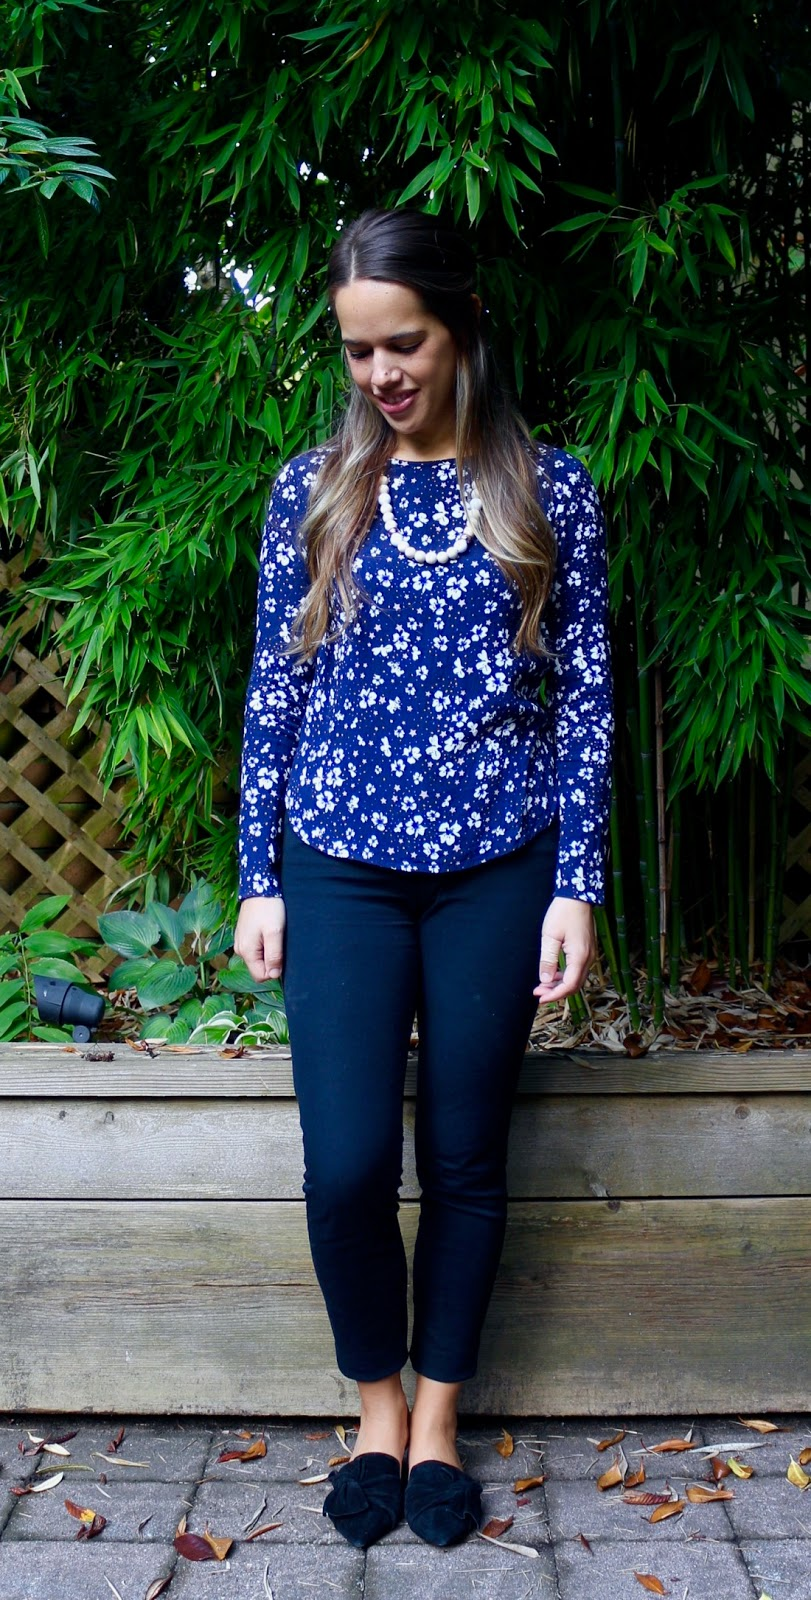 Jules in Flats - Floral Top with Mules (Business Casual Fall Workwear on a Budget)